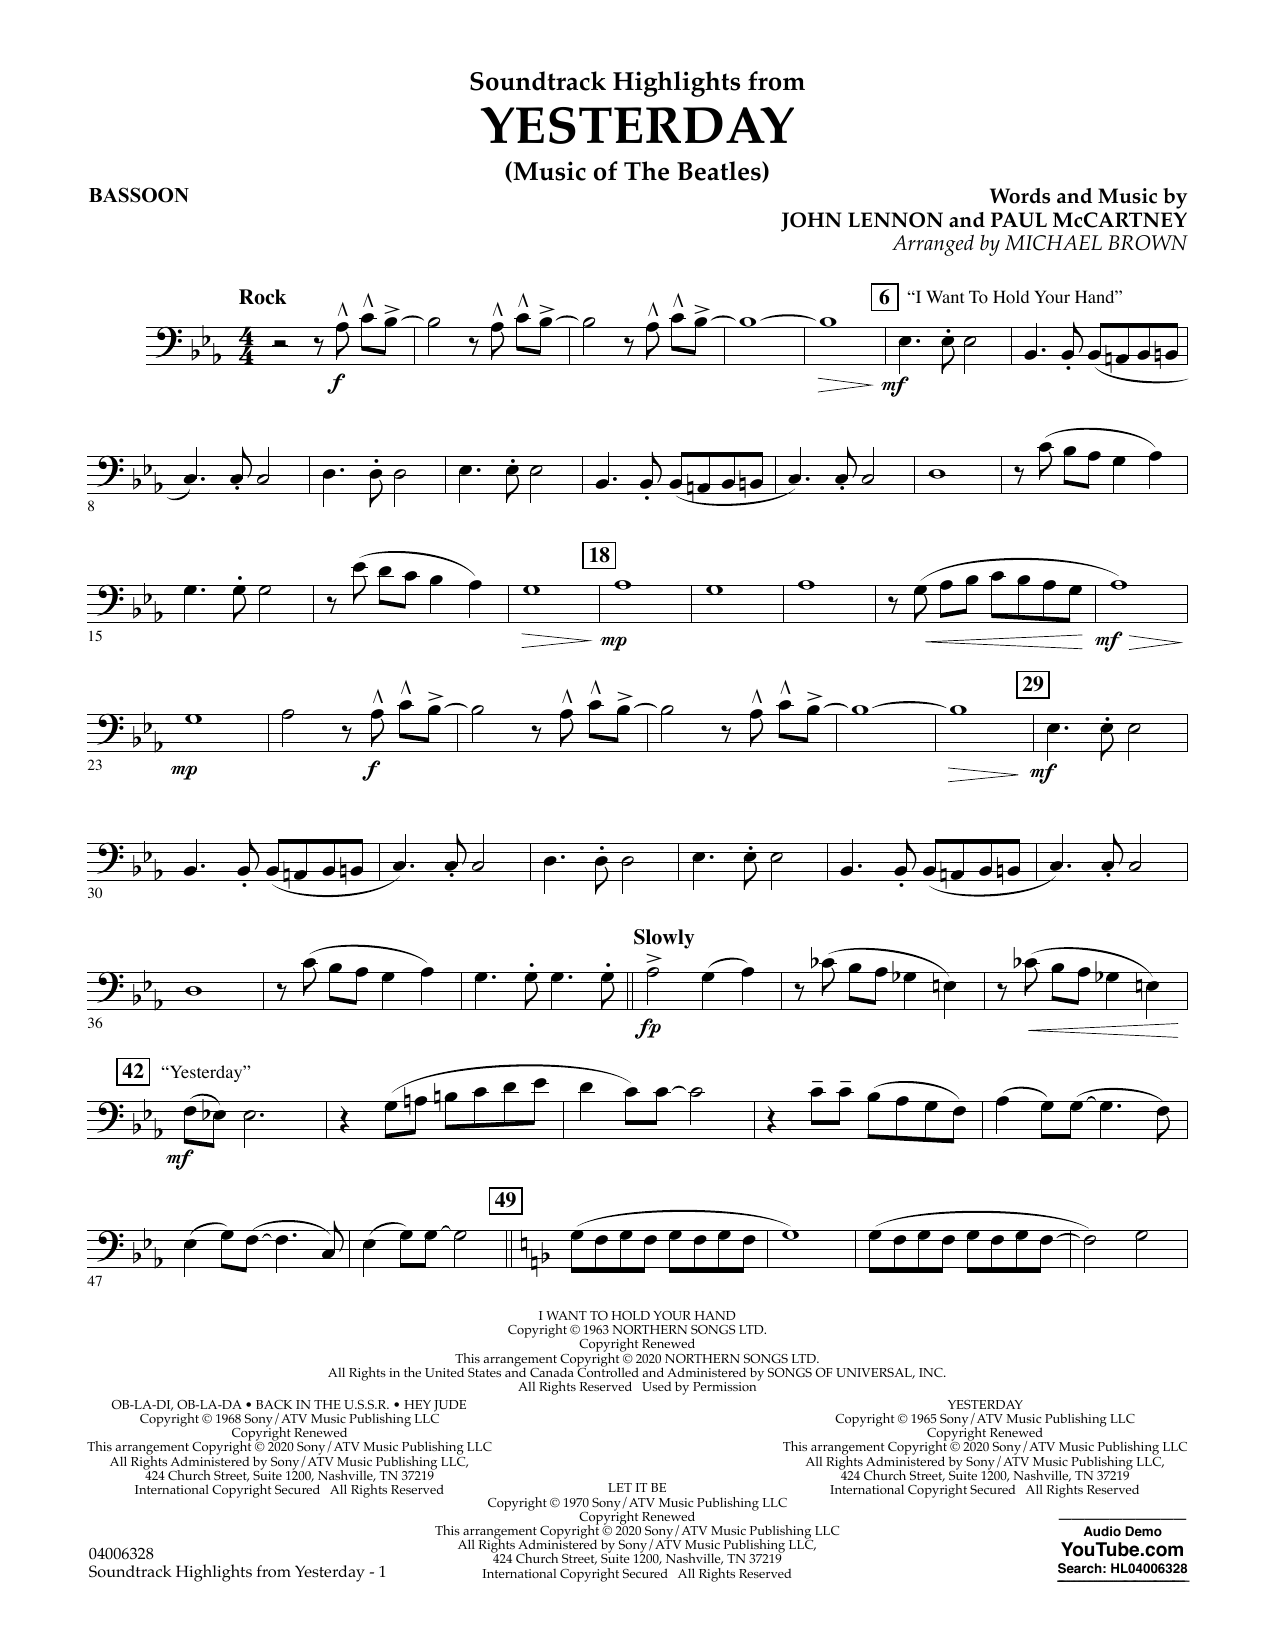 The Beatles Highlights from Yesterday (Music Of The Beatles) (arr. Michael Brown) - Bassoon sheet music notes and chords. Download Printable PDF.